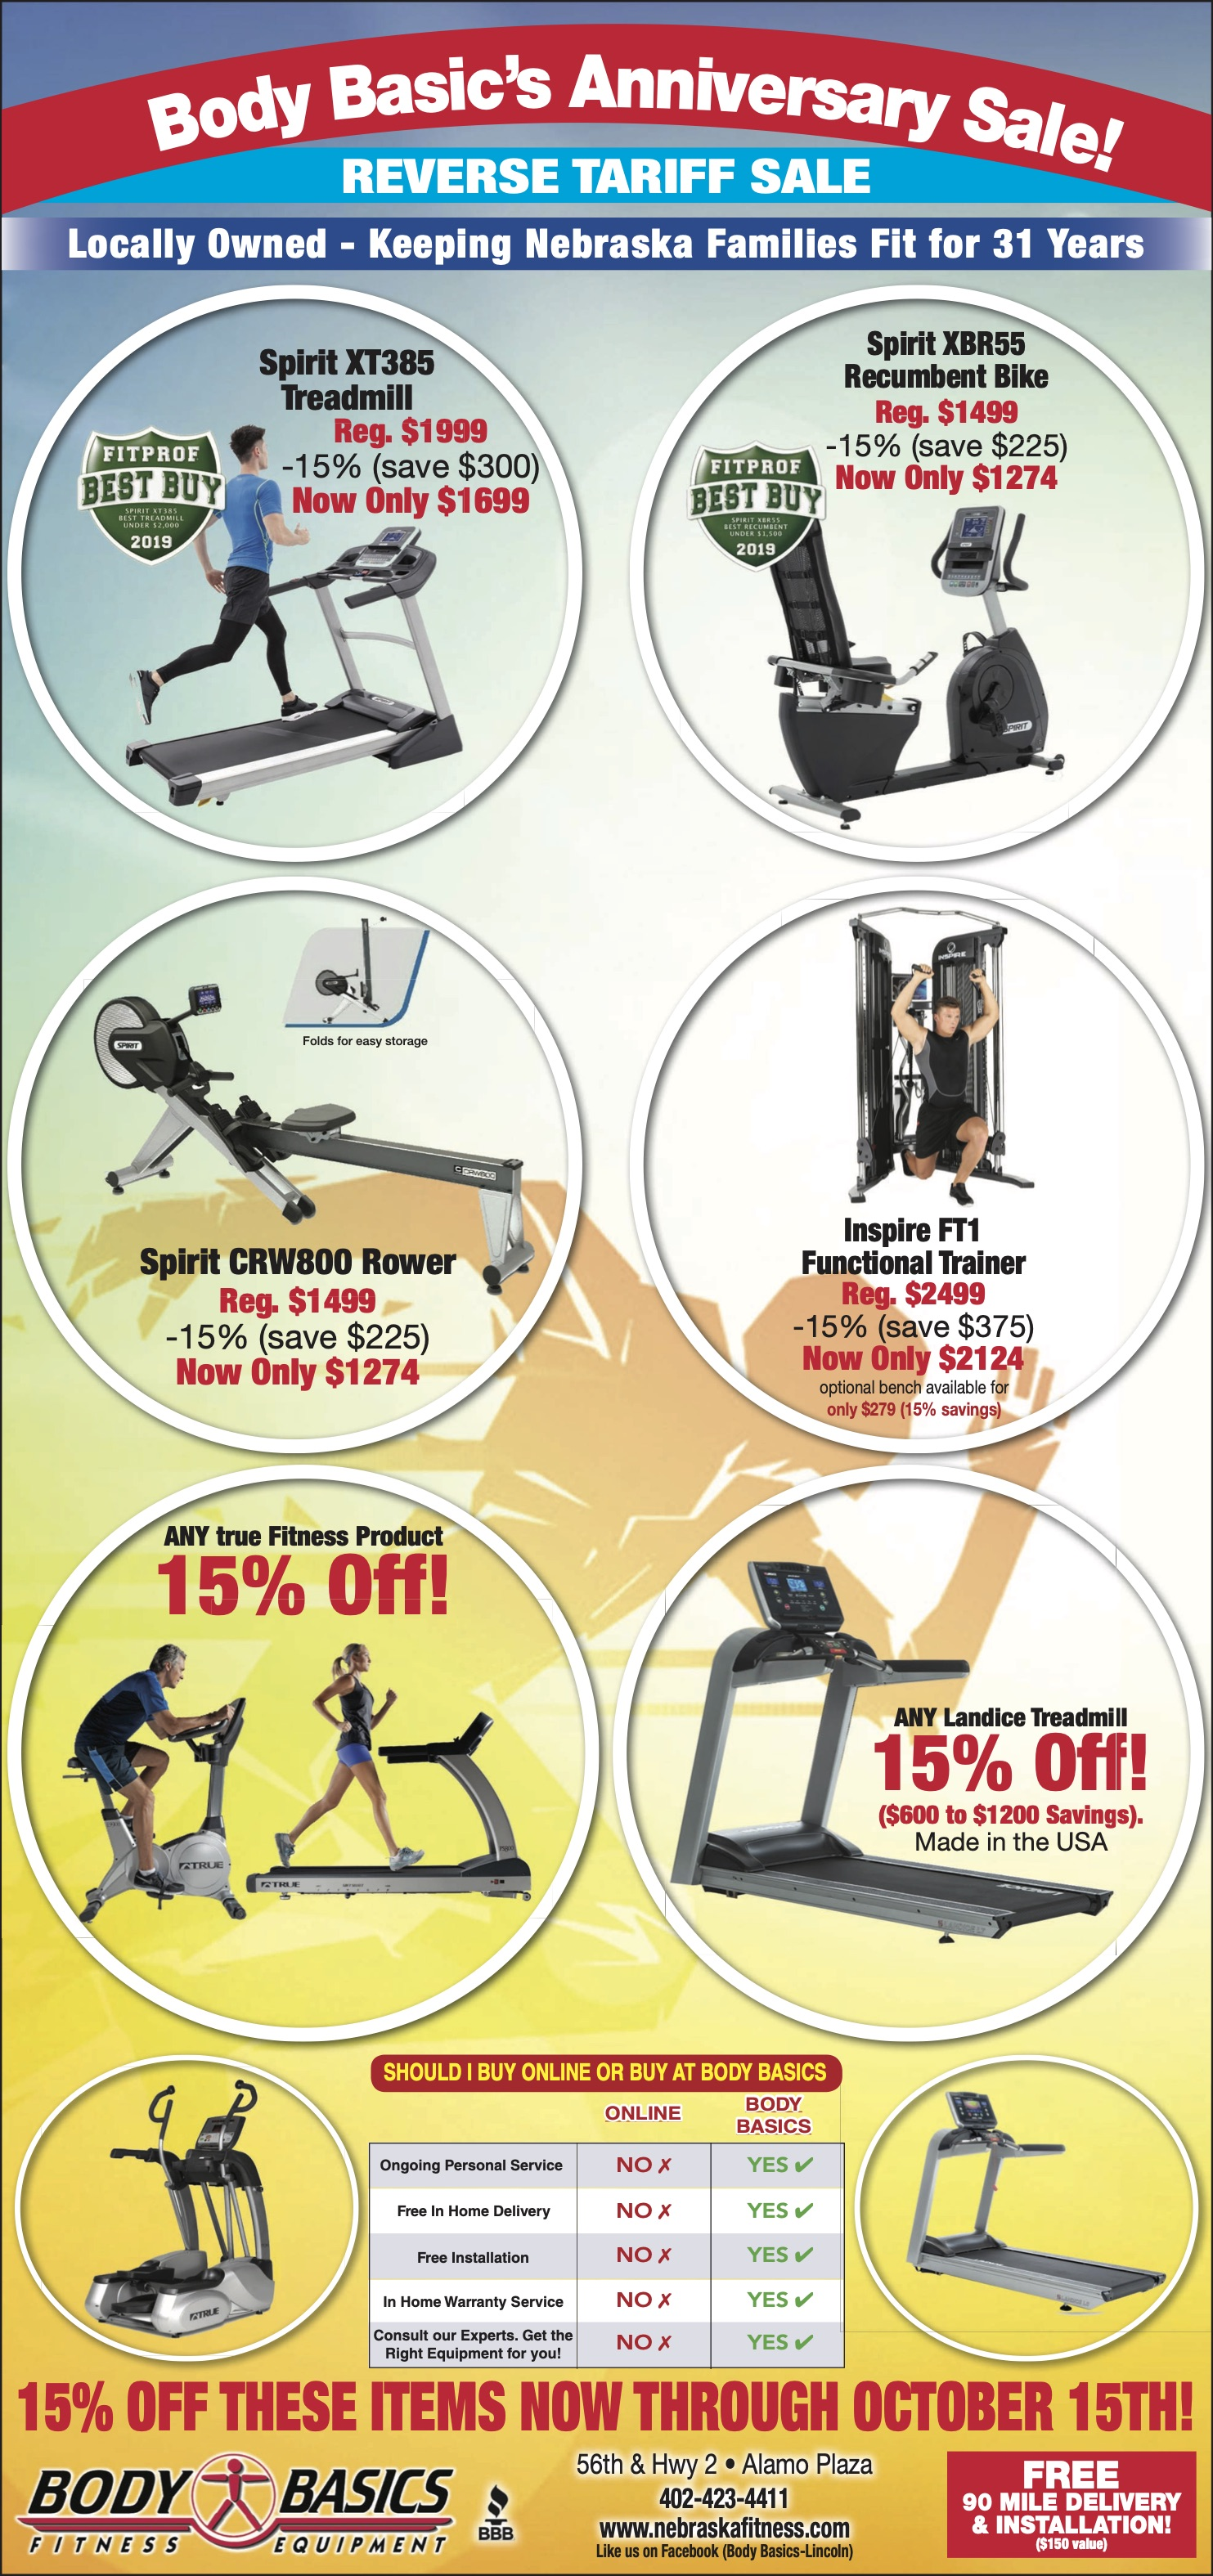 Body Basics Fitness Gear in Lincoln, 5631 S 56th St #1